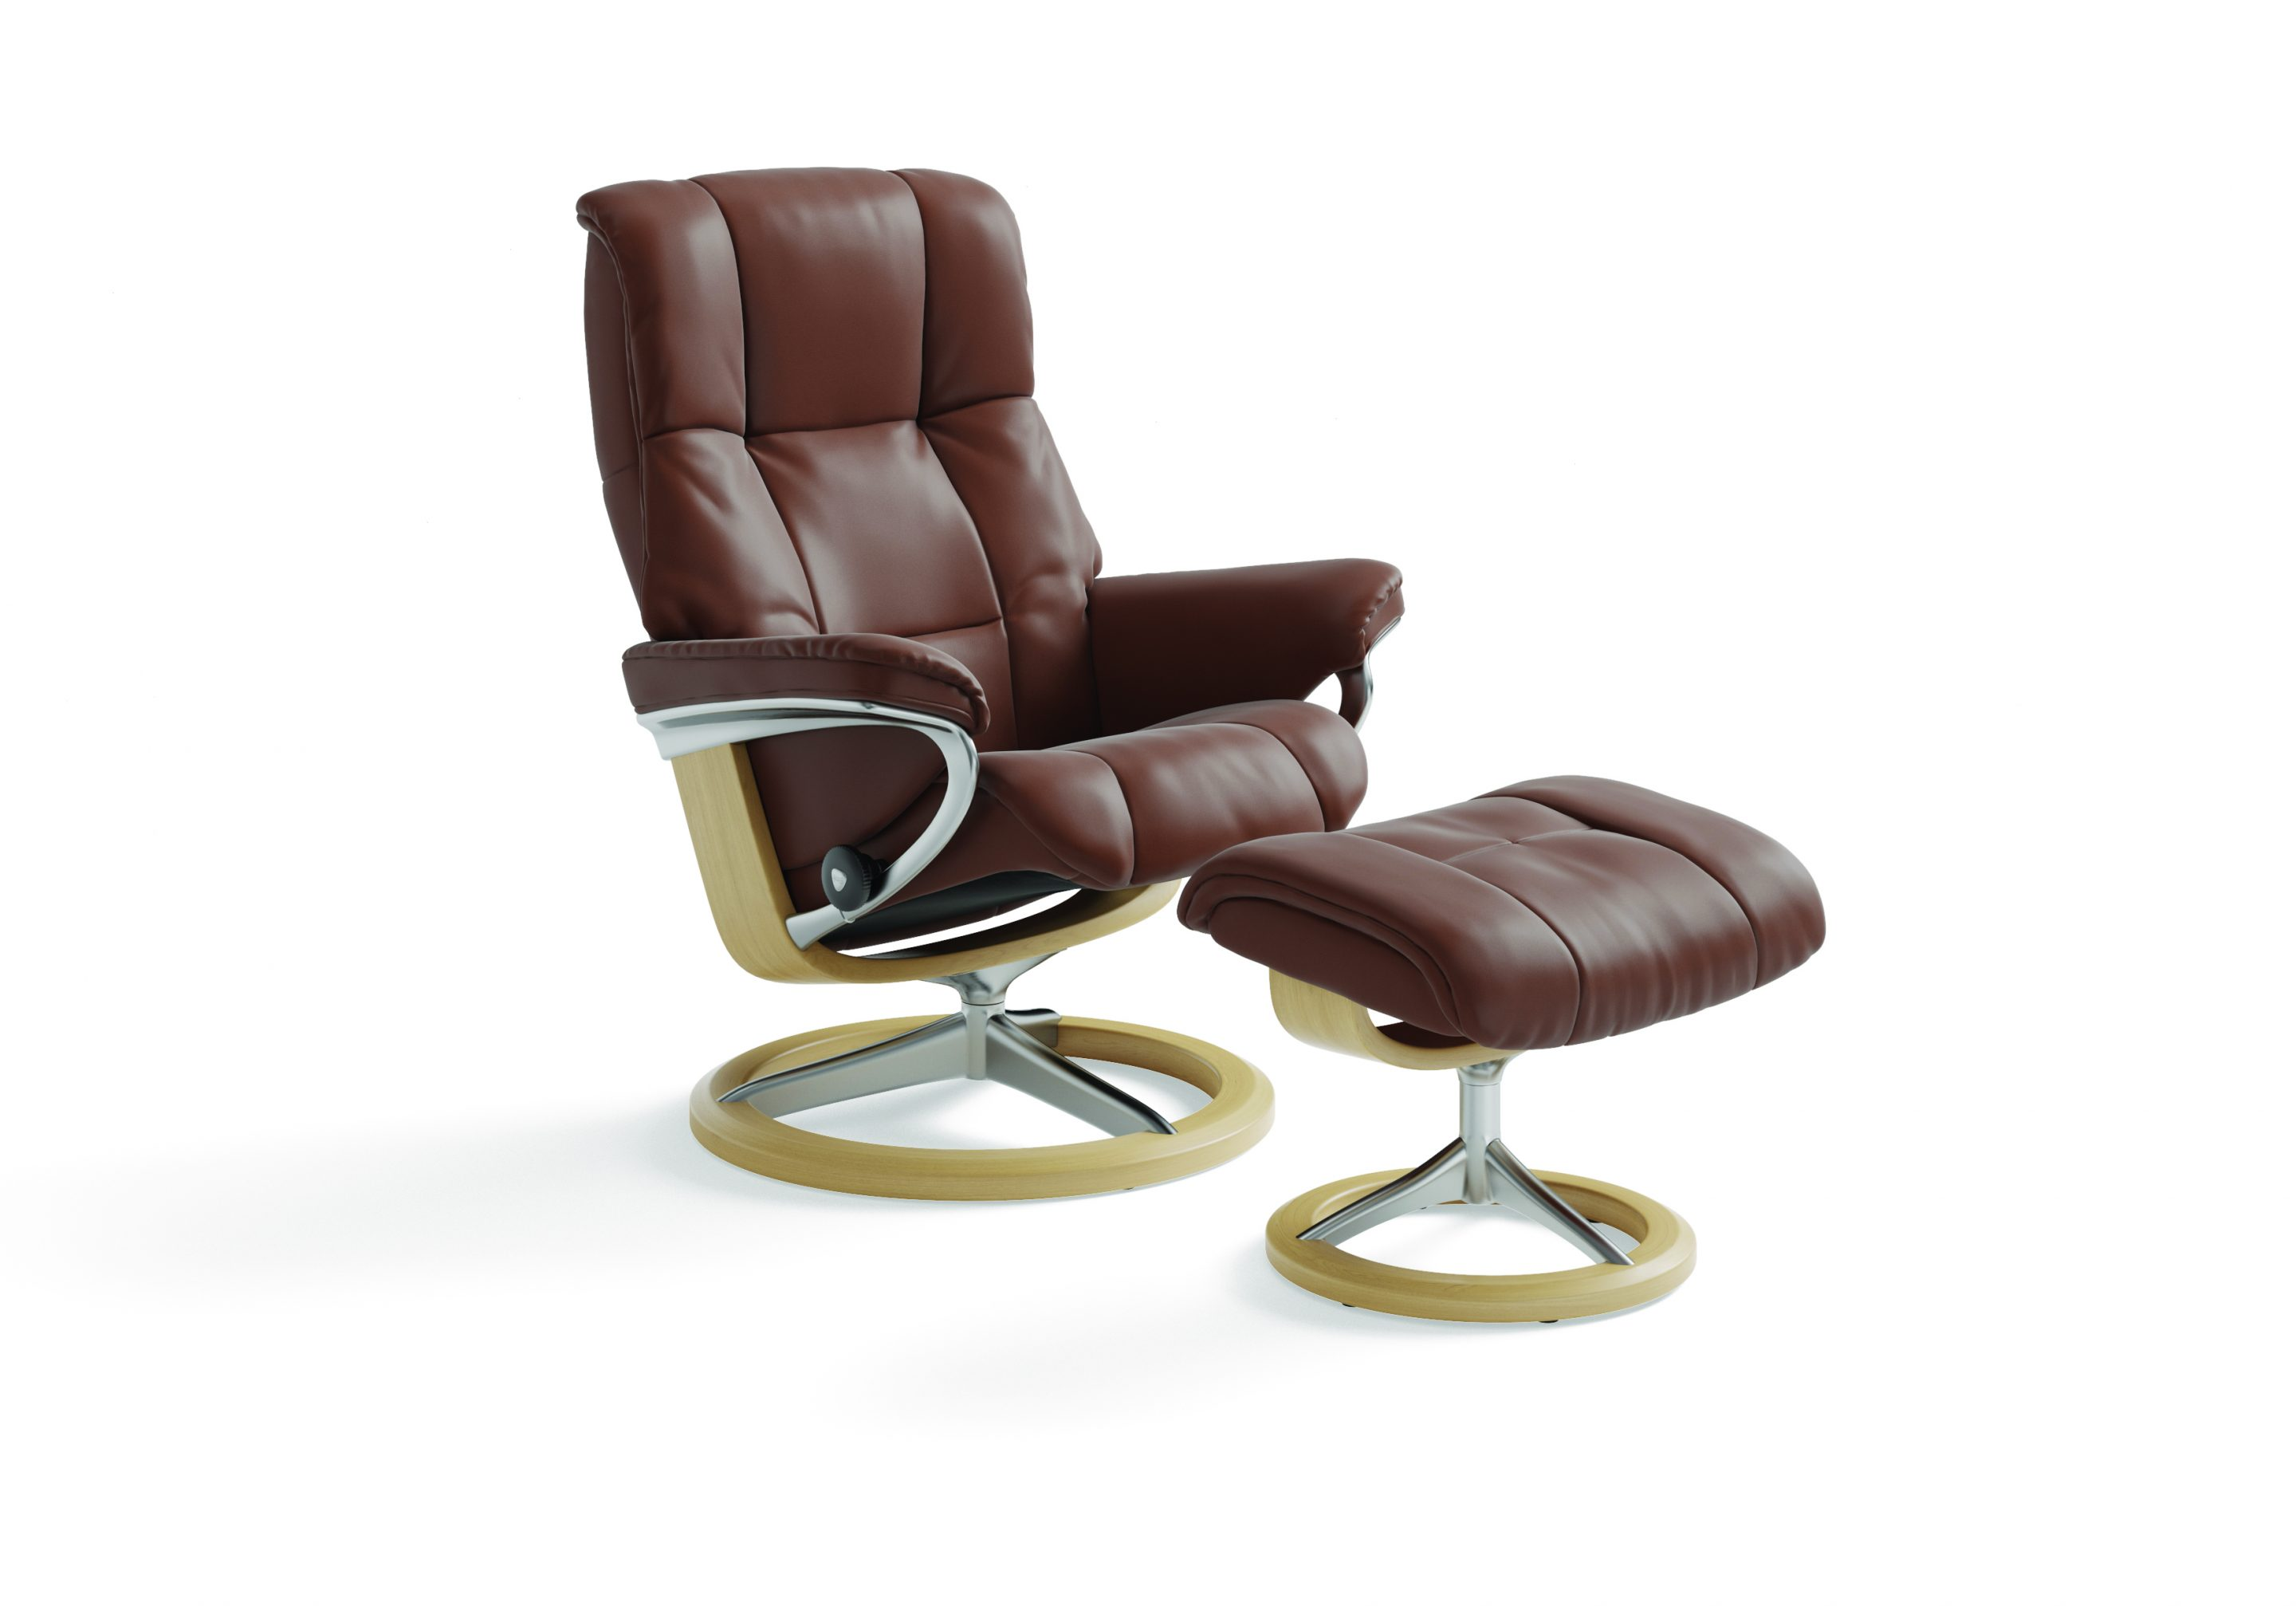 stressless_mayfair_signature_m_paloma_copper_eik